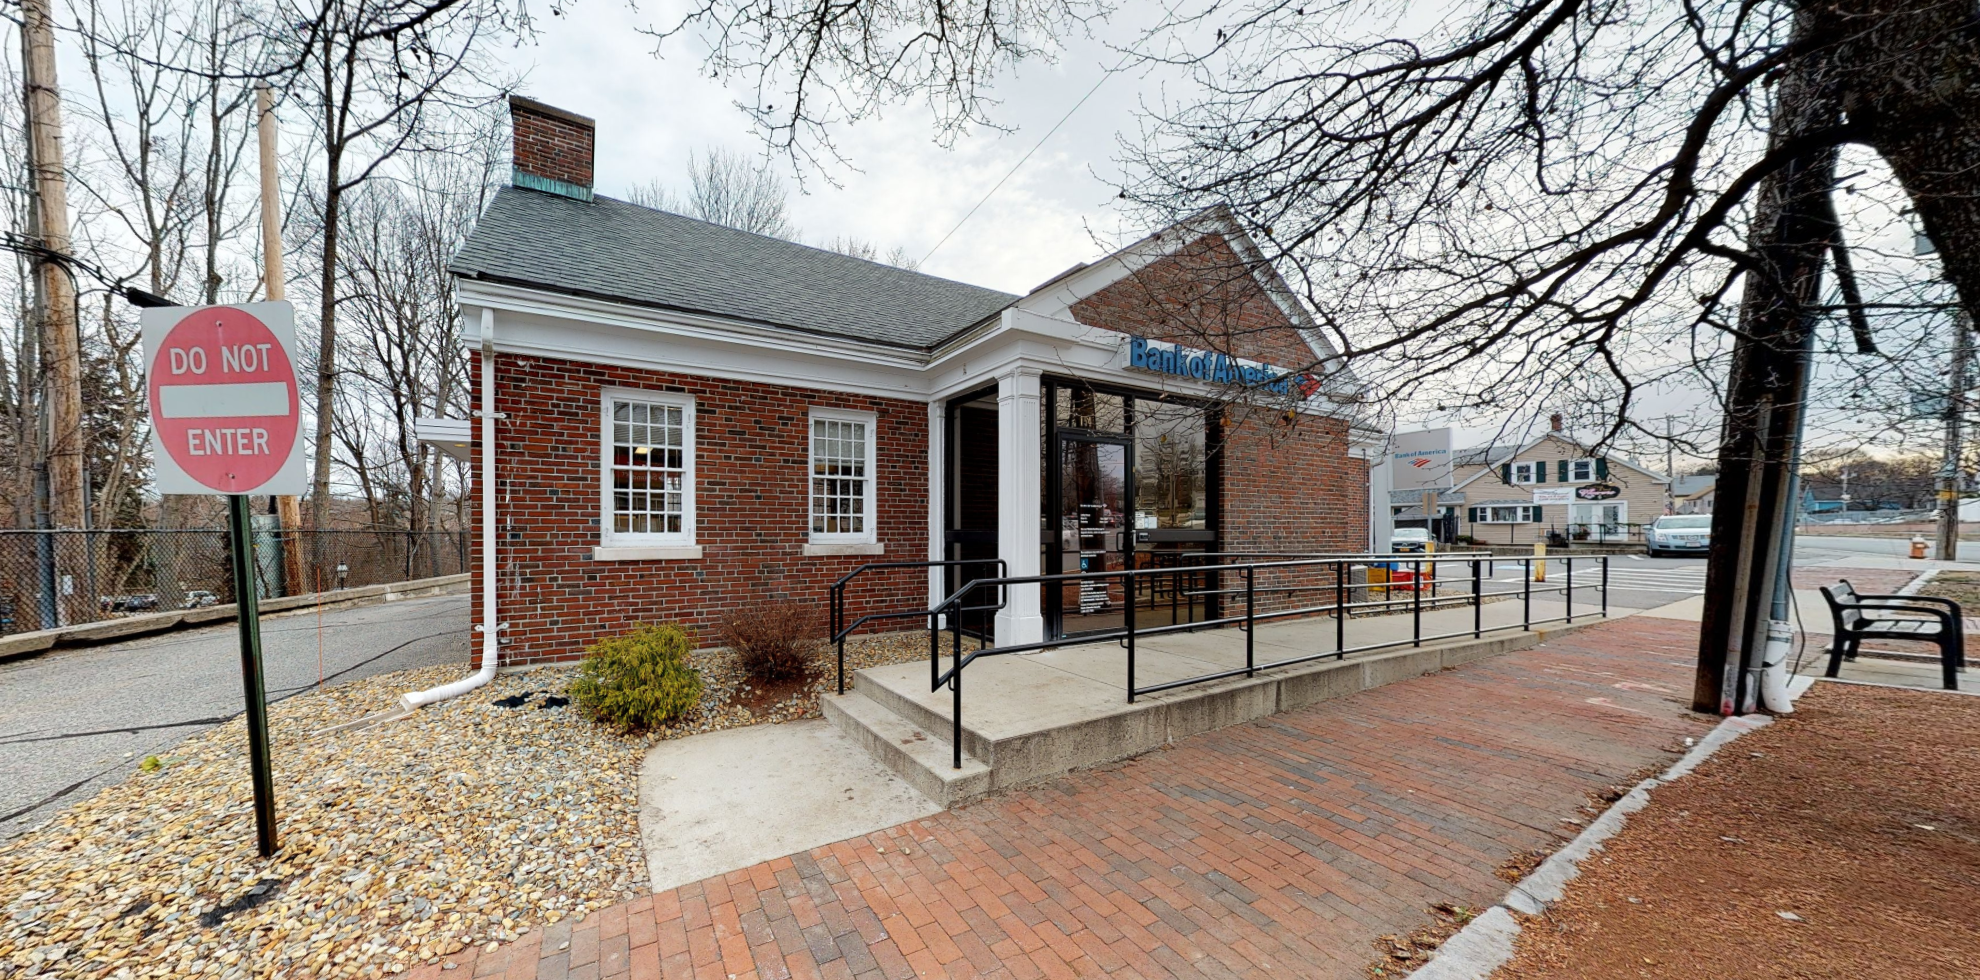 Bank of America financial center with walk-up ATM   154 Main St, North Andover, MA 01845